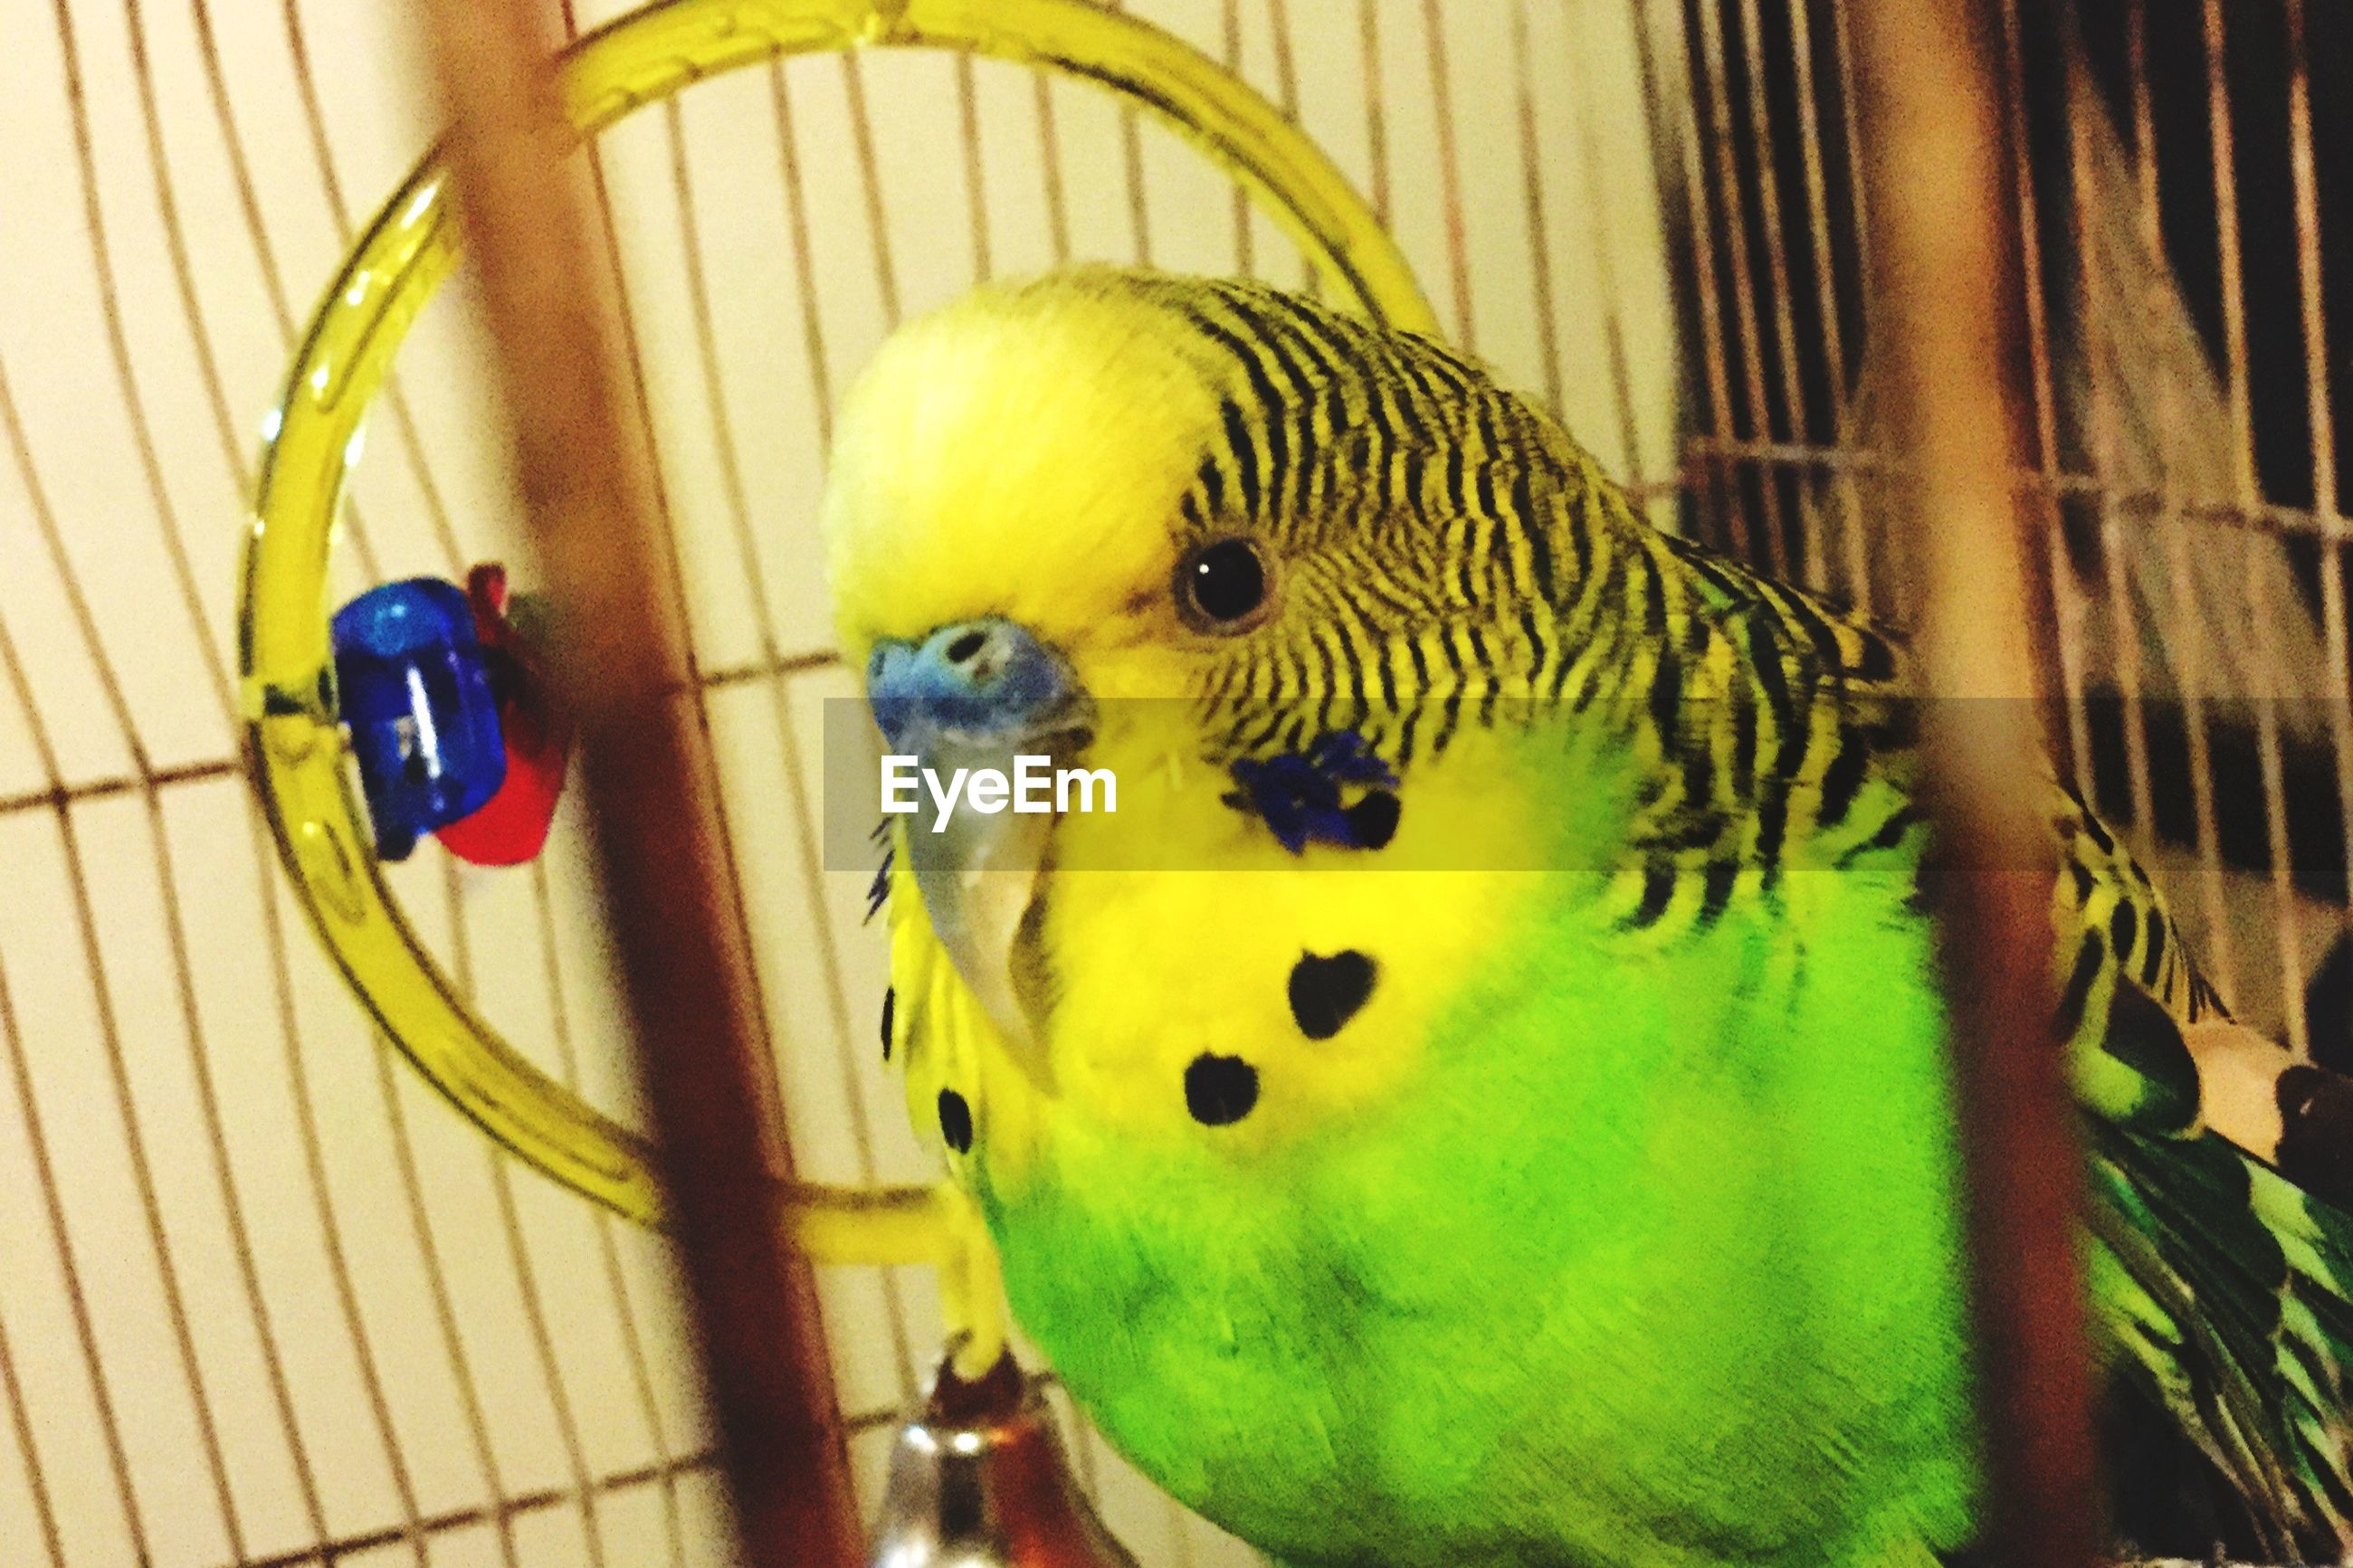 indoors, animal themes, one animal, yellow, close-up, cage, pets, domestic animals, green color, no people, parrot, multi colored, animal head, toy, animal representation, animals in captivity, high angle view, day, wildlife, bird